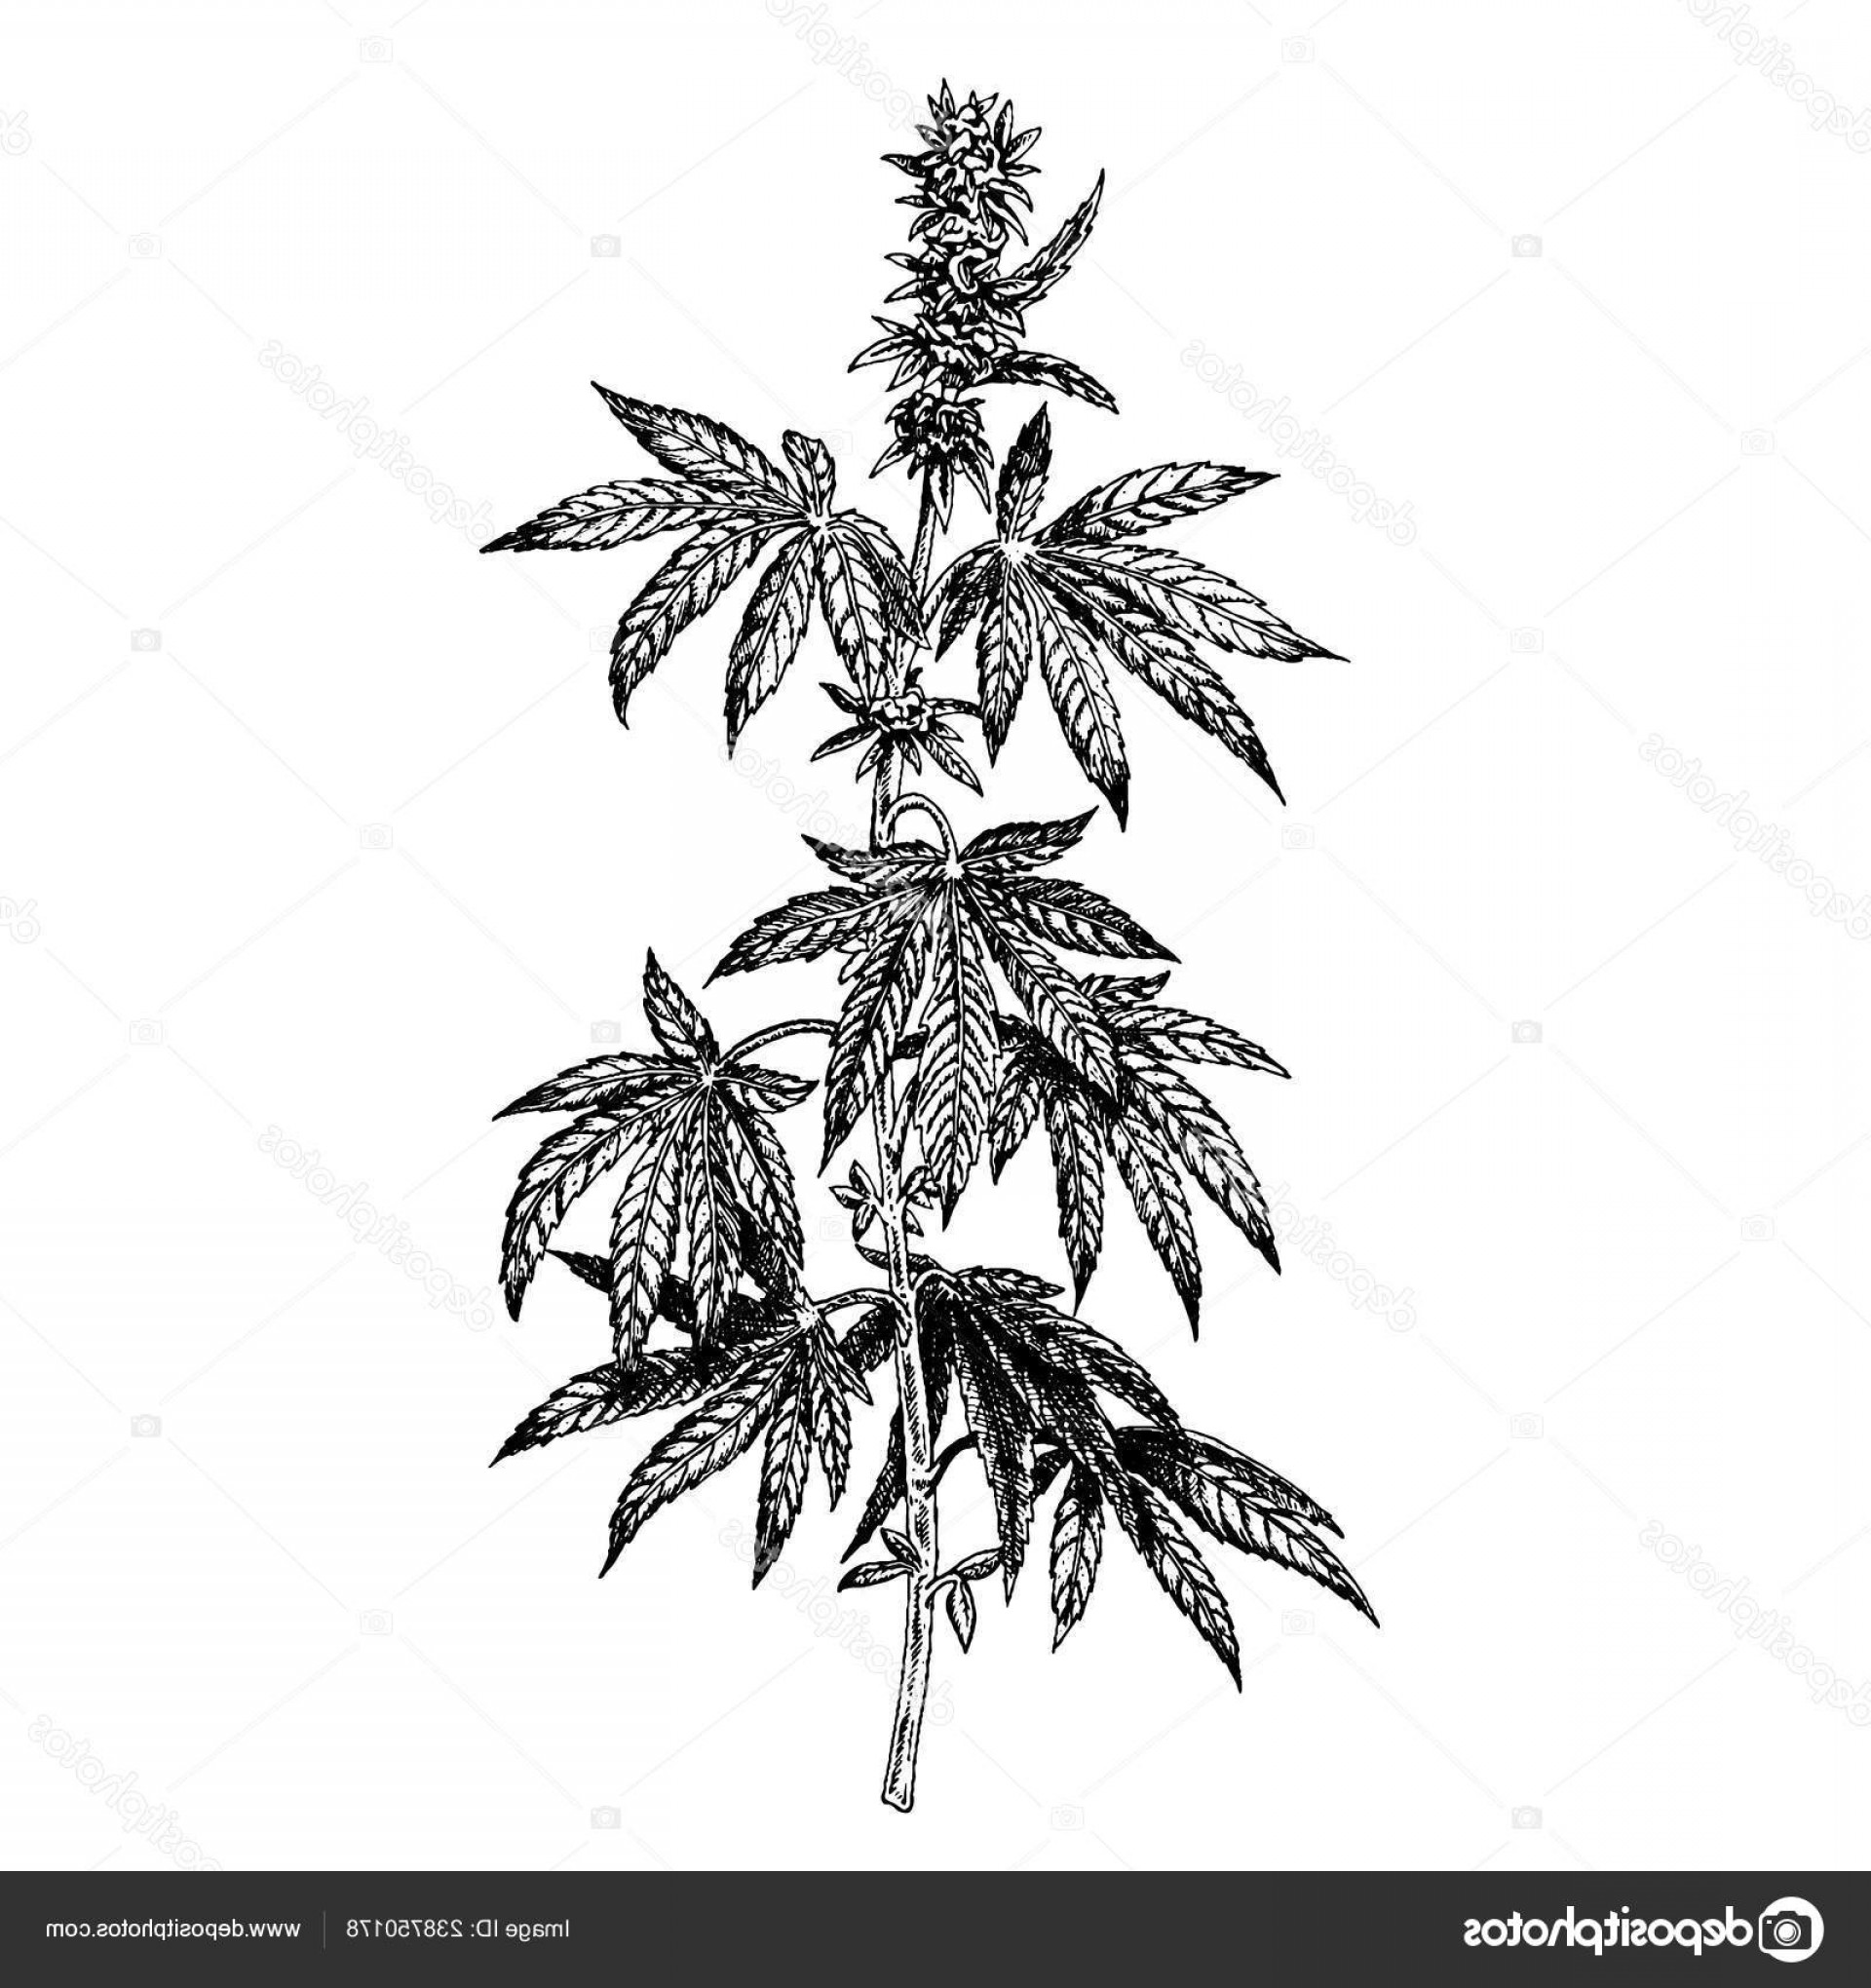 Black And White Vector Image Of Weed Plants: Stock Illustration Hand Drawn Hemp Plant With